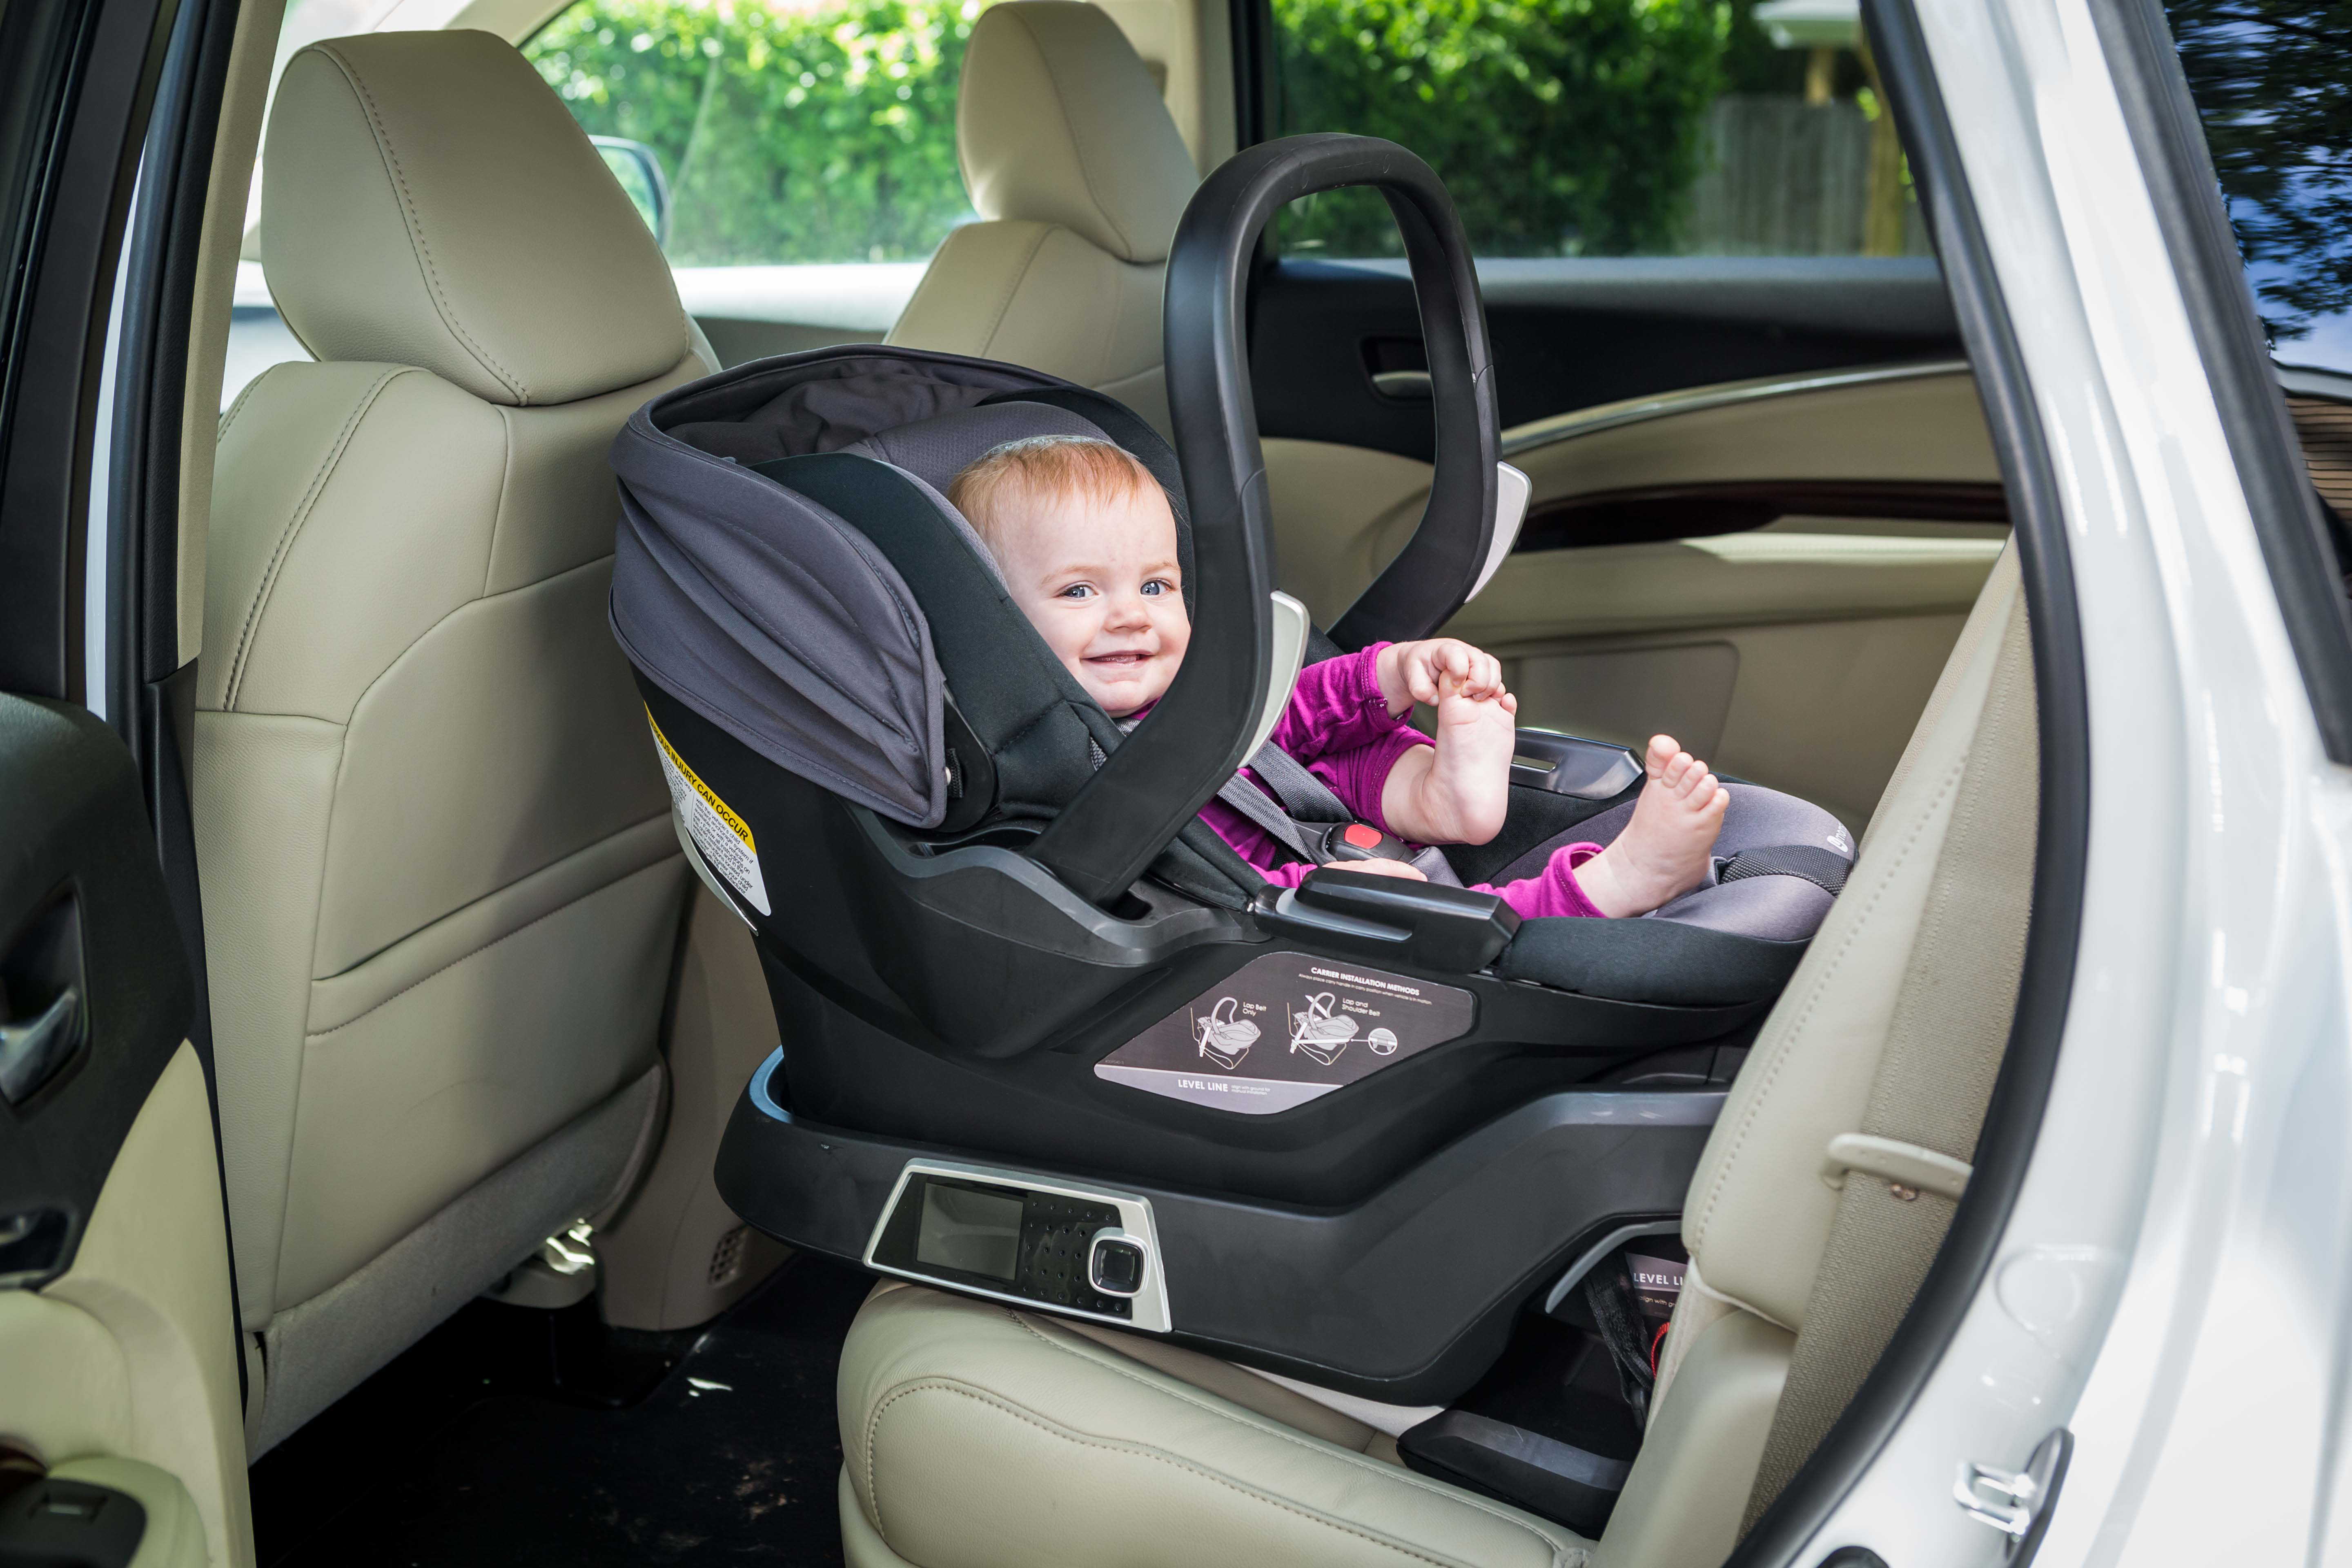 Child Passenger Safety Week: Self-installing auto seats